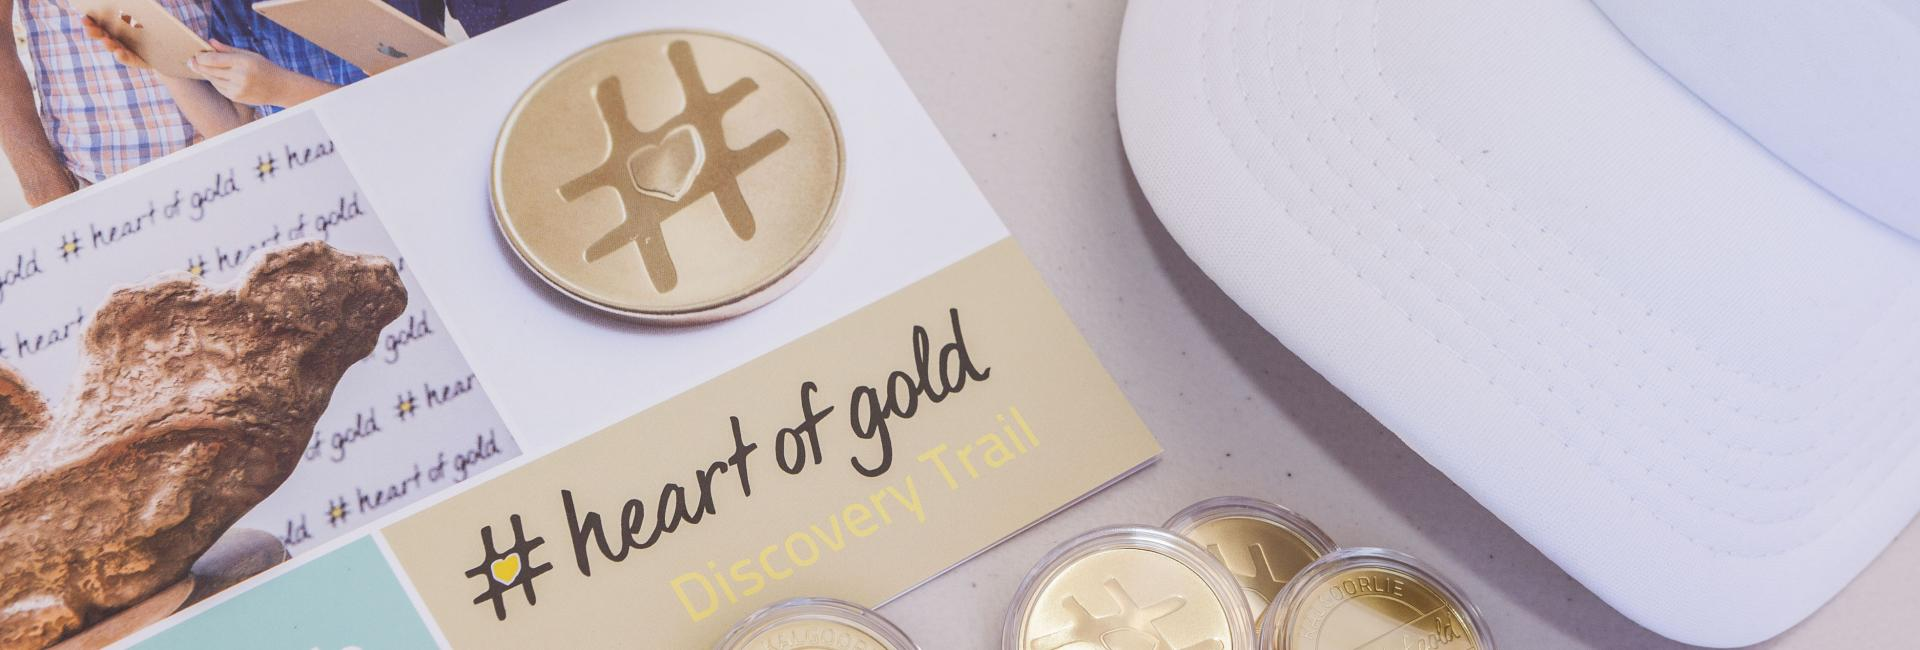 Discover the Heart of Gold Discovery Trail